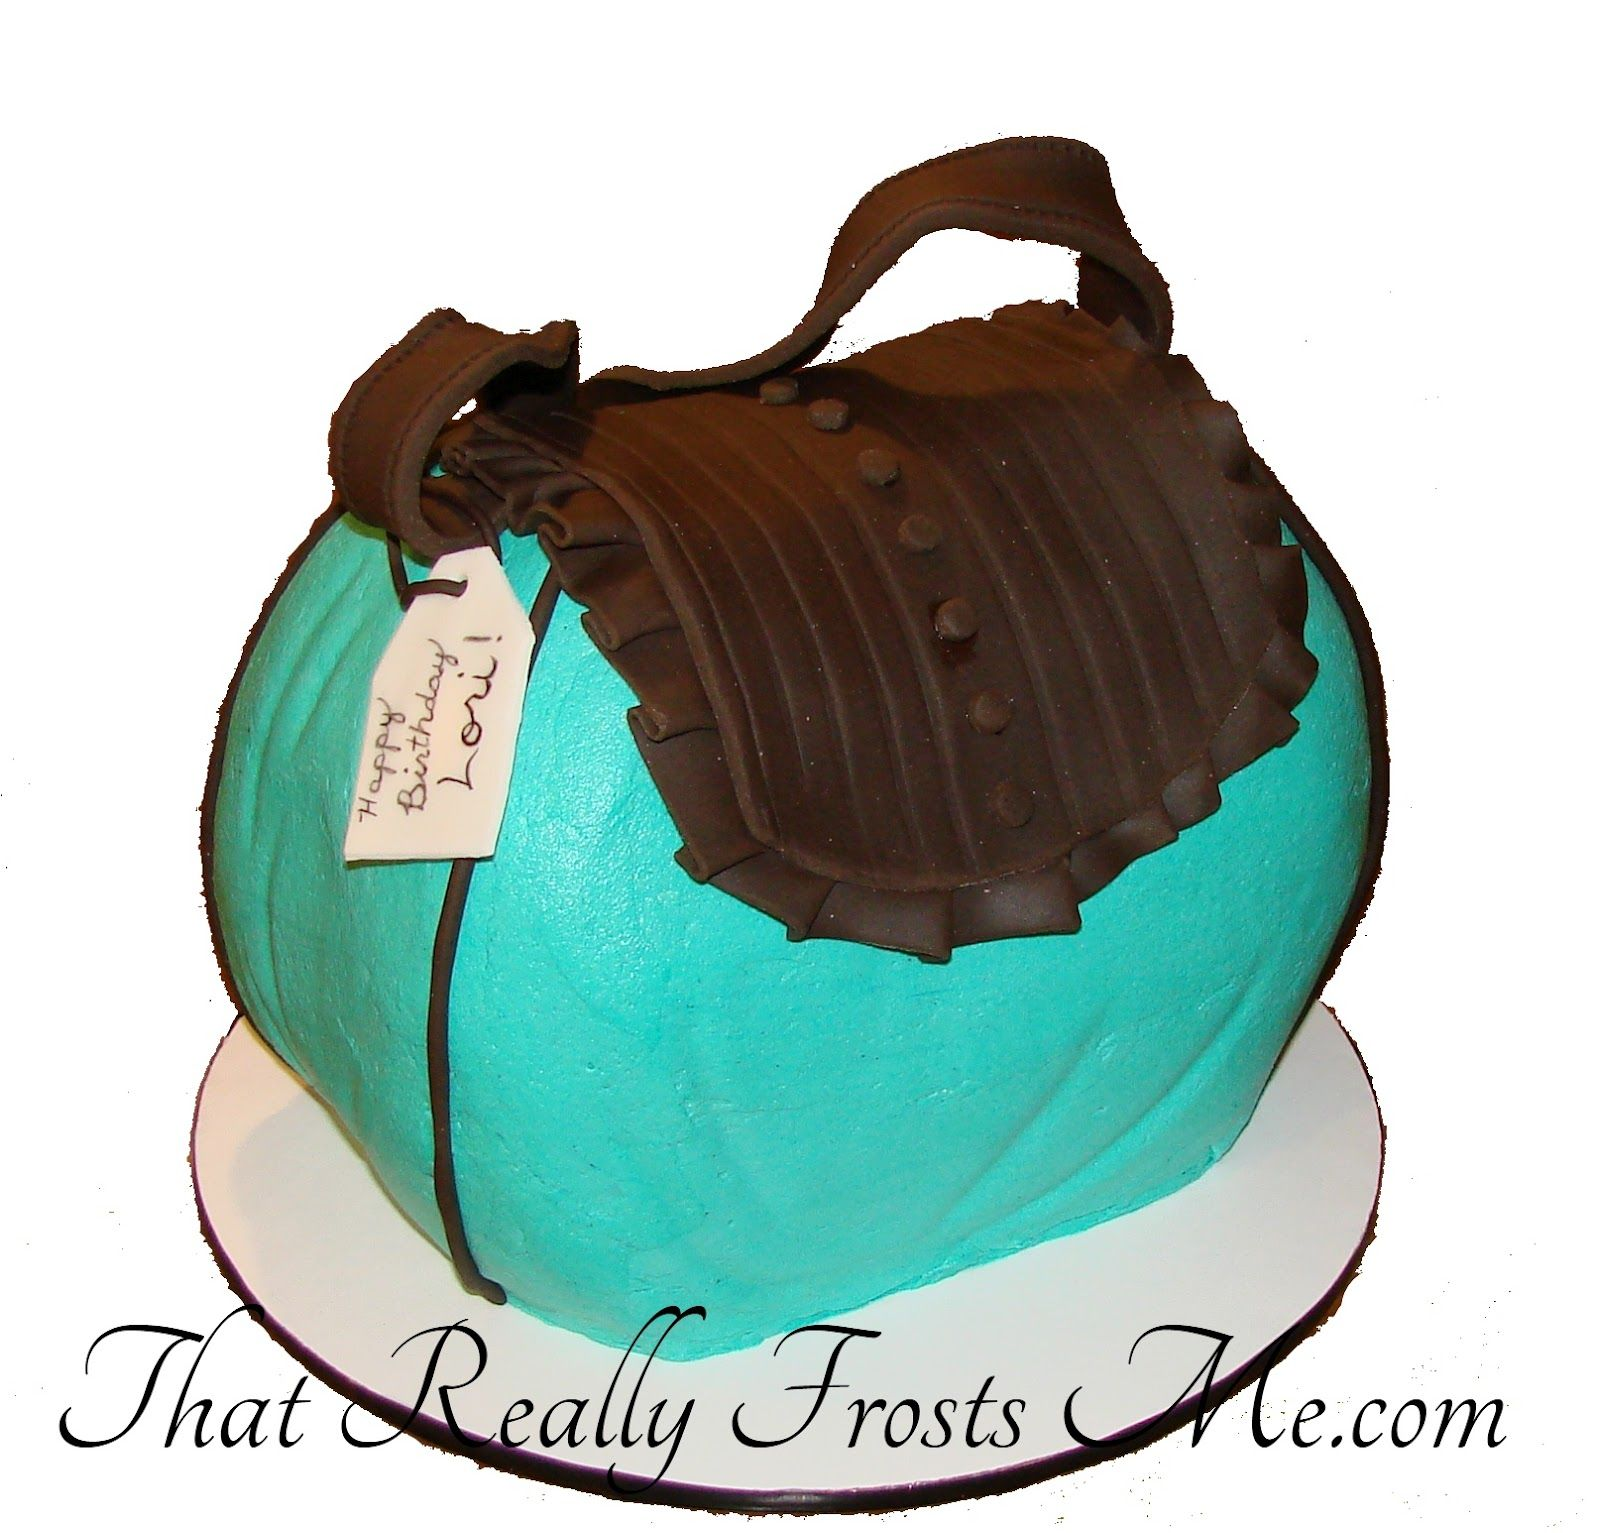 That Really Frosts Me Turquoise And Leather Purse Cake Tutorial